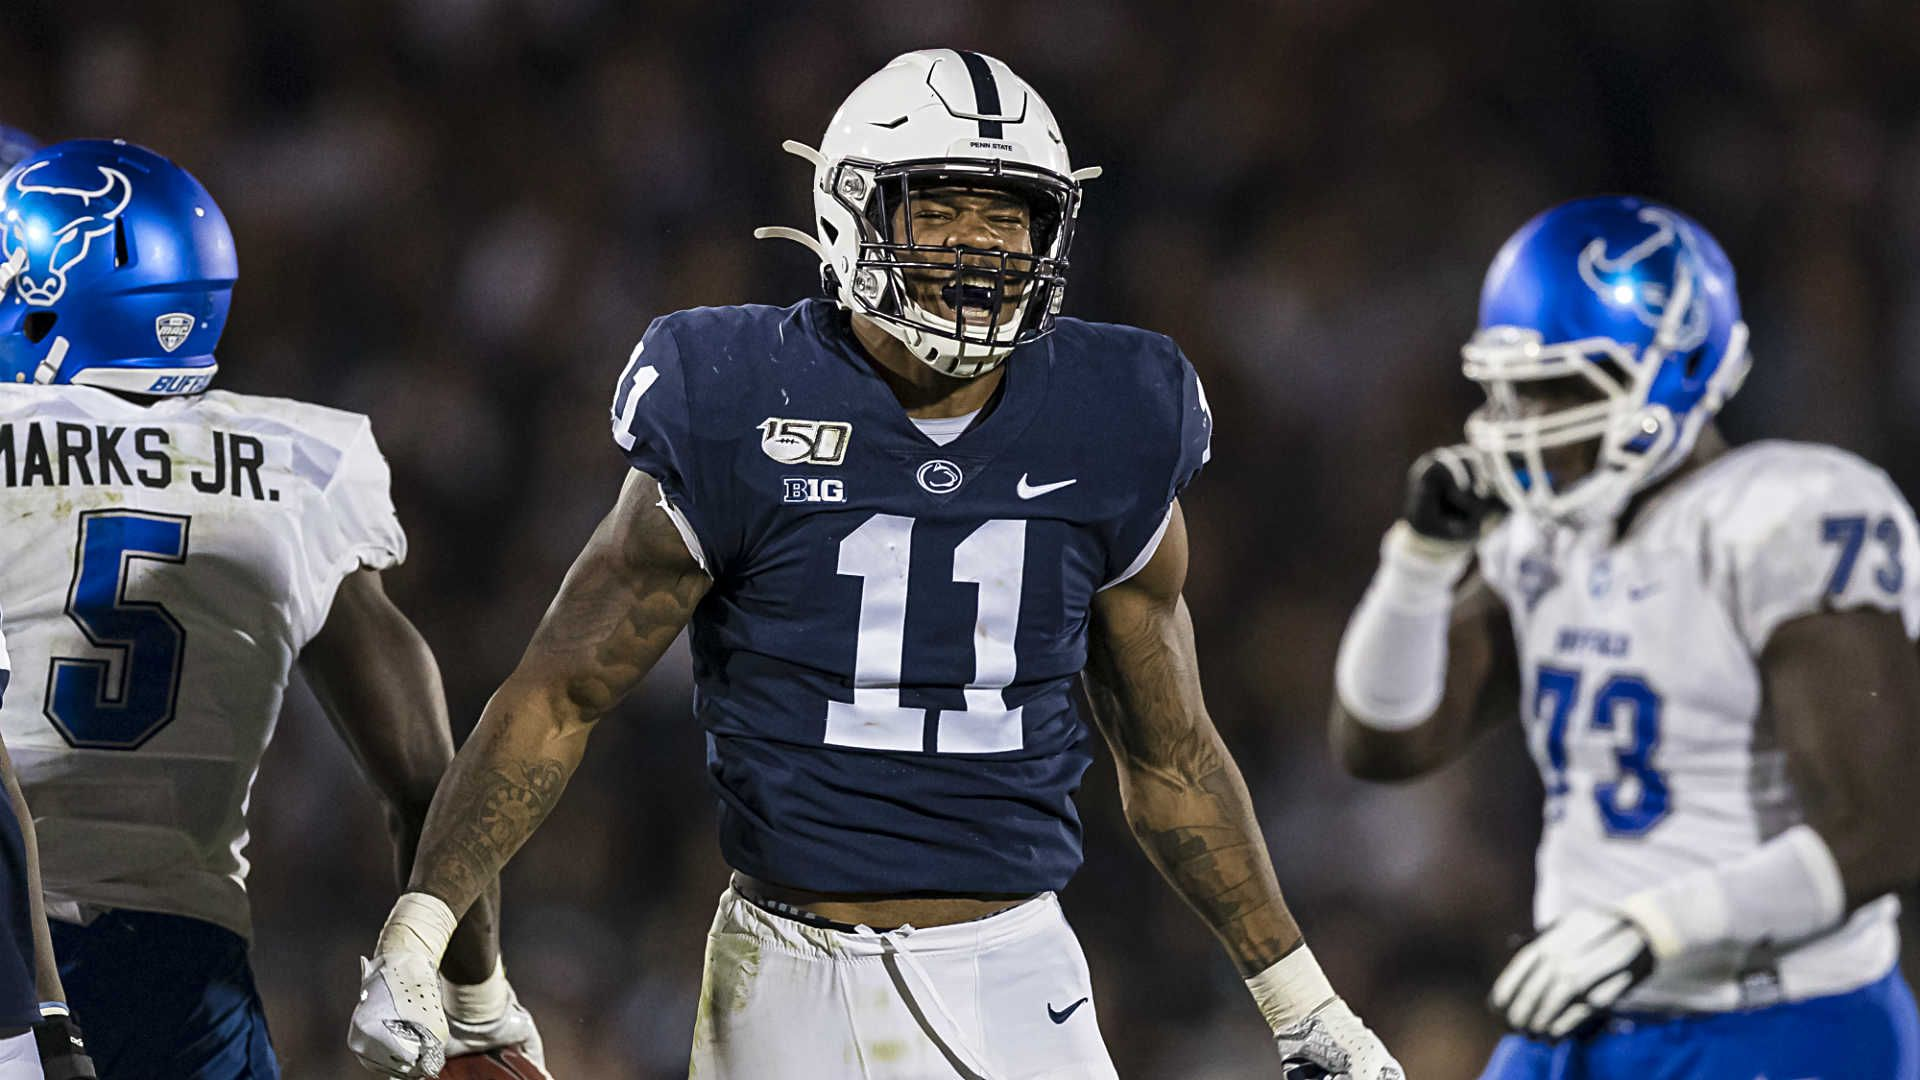 Seven best bets to make College Football Playoff for first